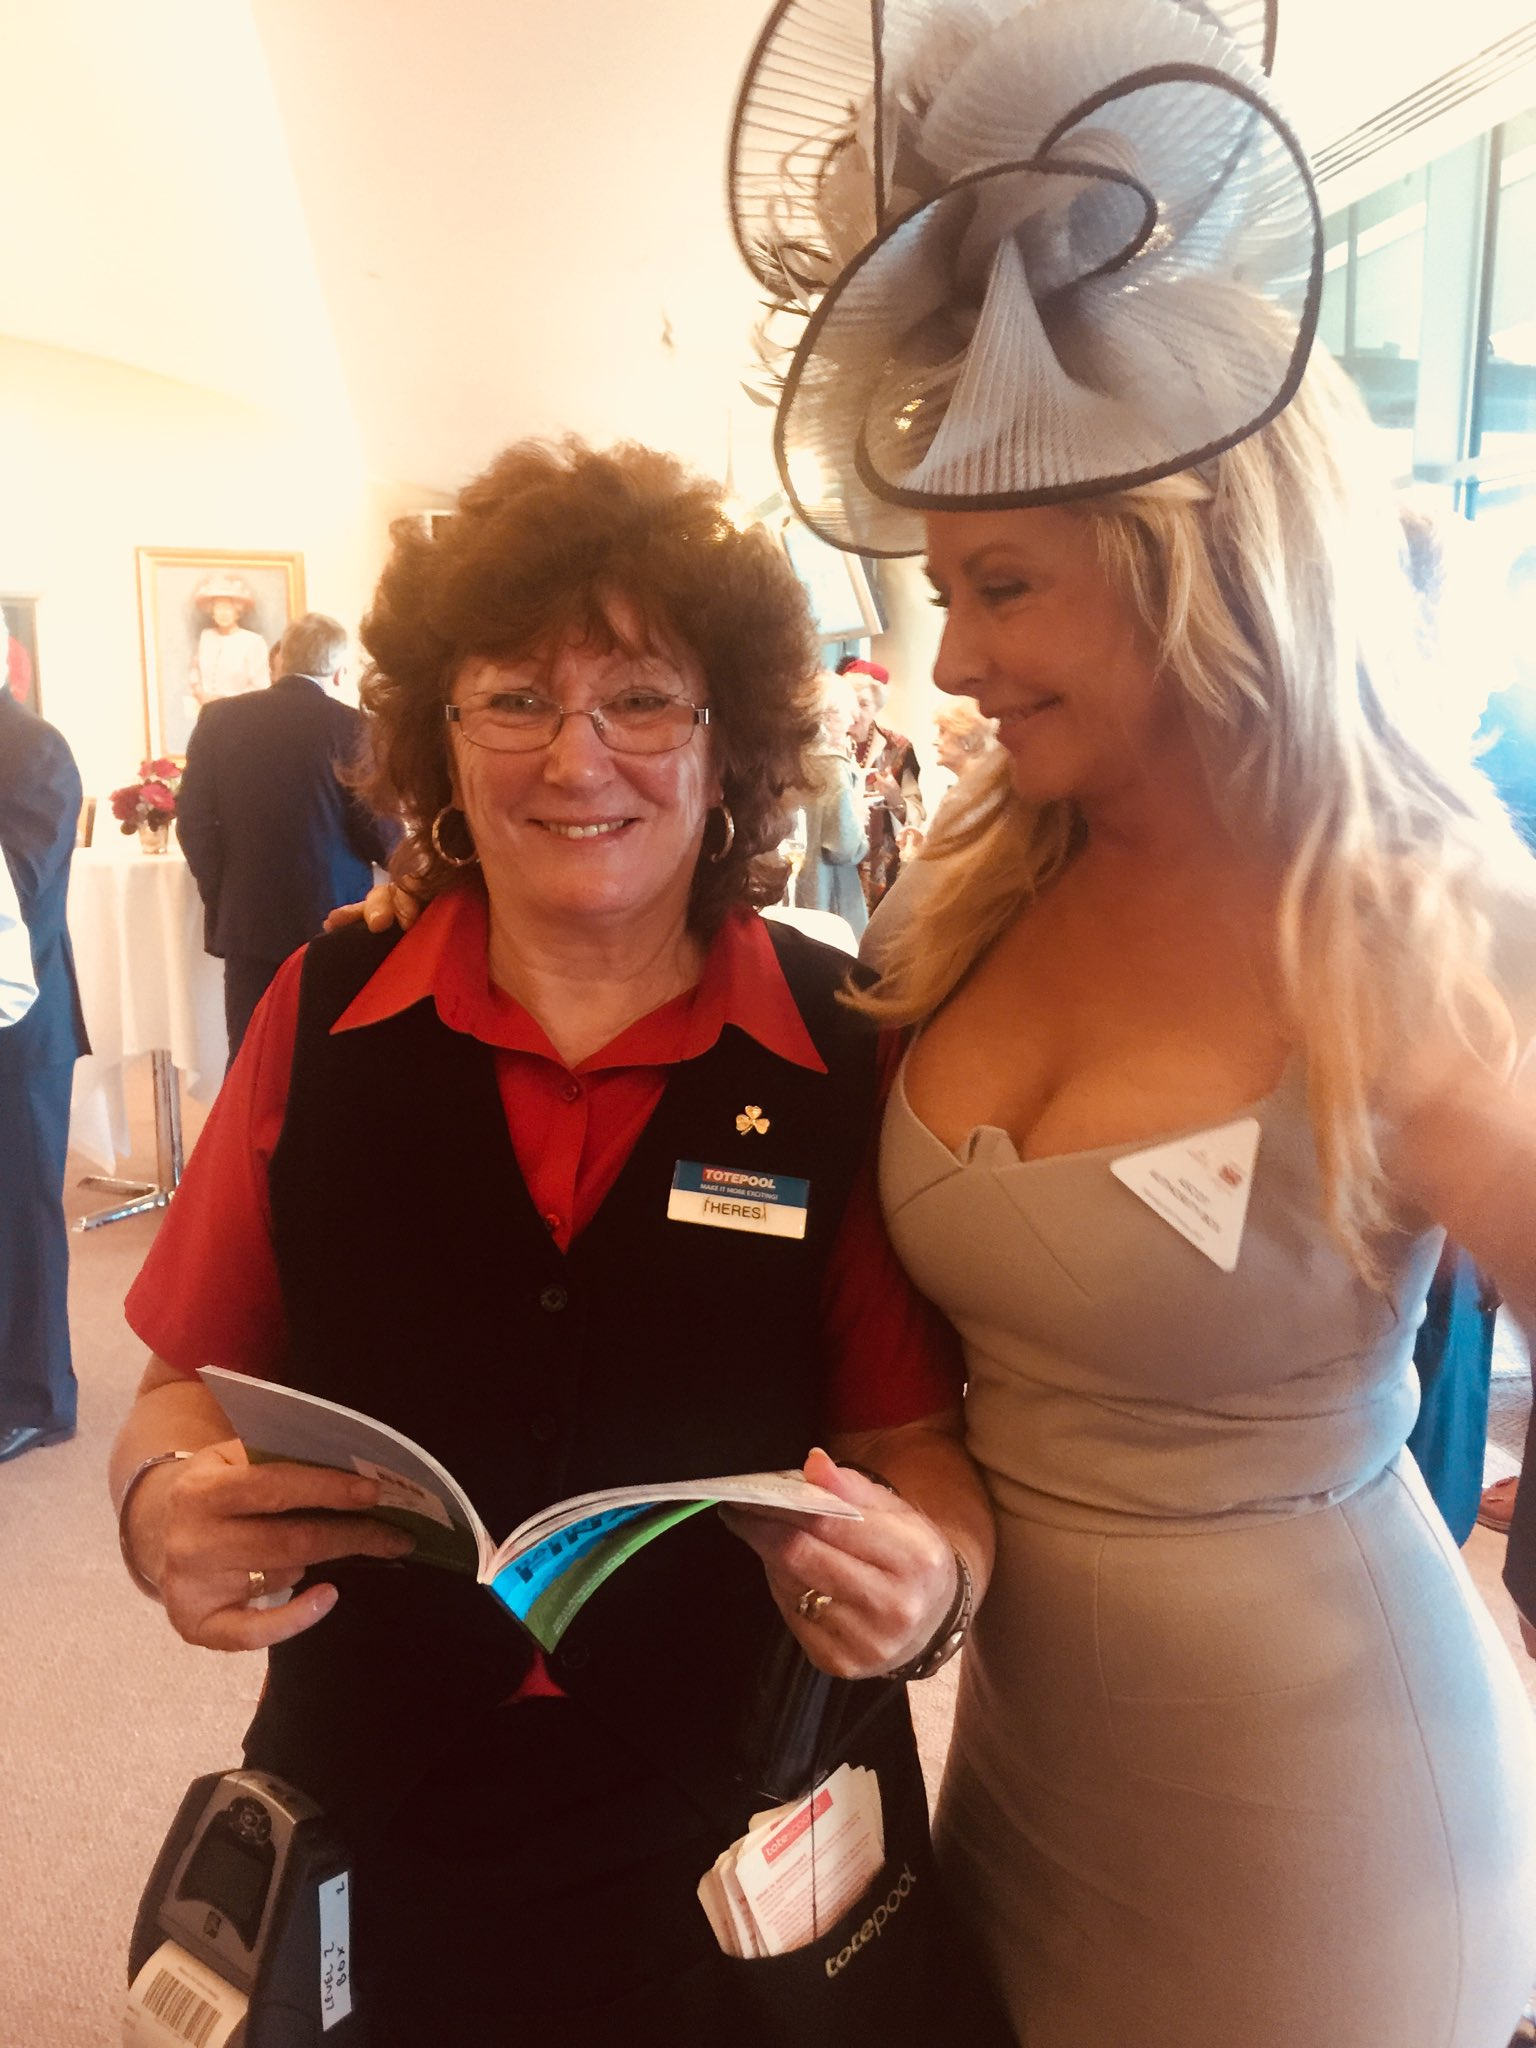 With lovely Theresa the Tote lady....@ascot @ChampionsSeries x https://t.co/TfmogSFnr1